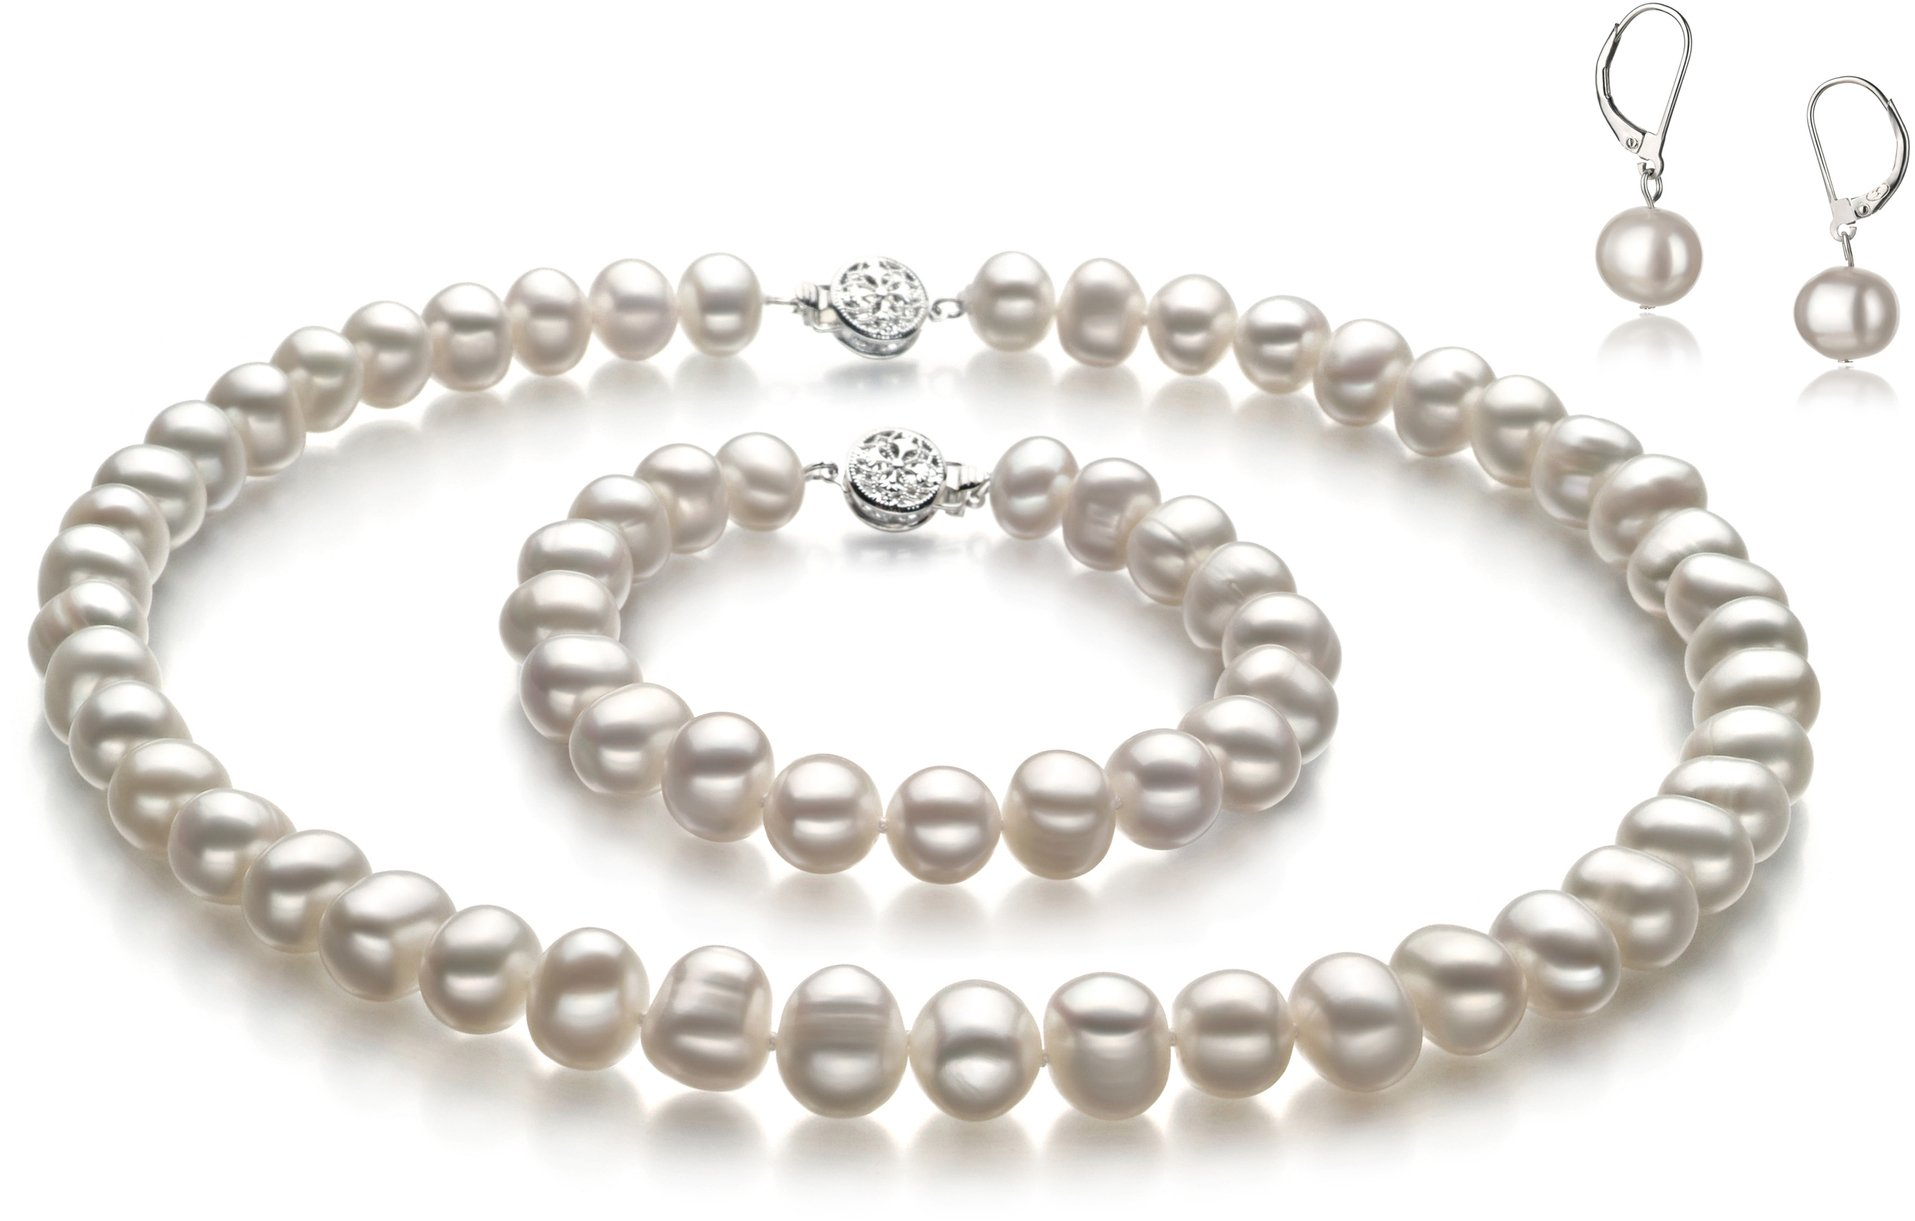 PearlsOnly - Kaitlyn White 8-9mm A Quality Freshwater Cultured Pearl Set-18 in Princess length